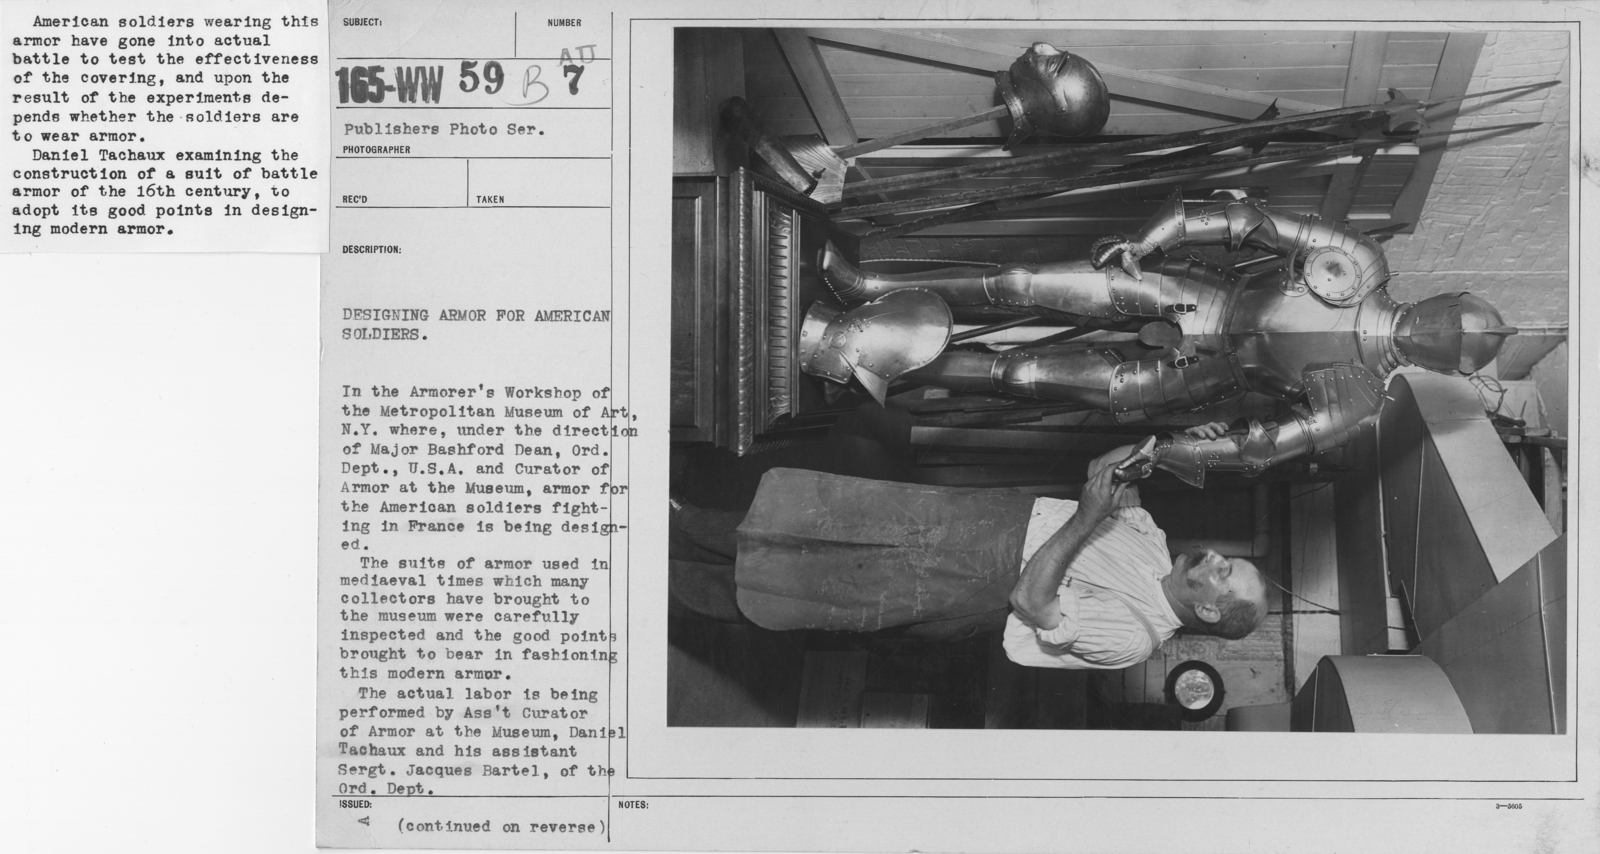 Armor - Armor - Designing armor for American Soldiers. In the Armorer's Workshop of the Metropolitan Museum of Art, N.Y., under the direction of Major Bashford Dean, Ord. Dept., U.S.A. and Curator of Armor at the Museum, armor for the American soldiers fighting in France is being designed. The suits of armor used in medieval times which many collectors have brought to the museum were carefully inspected and thegood points brought to bear in fashioning this modern armor. The actual labor is being performed by Assistant Curator of Armor at the Museum, Daniel Tachaux and his assistant Sergt. Jacquest Bartel, of the Ord. Dept. American soldiers wearing this armor have gone into actual battle to test the effectiveness of the covering, and upon the result of the experiments depends whether the soldiers are to wear armor. Daniel Tachaux examining the construction of a suit of battle armor of the 16th century, to adopt its good points in designing modern armor